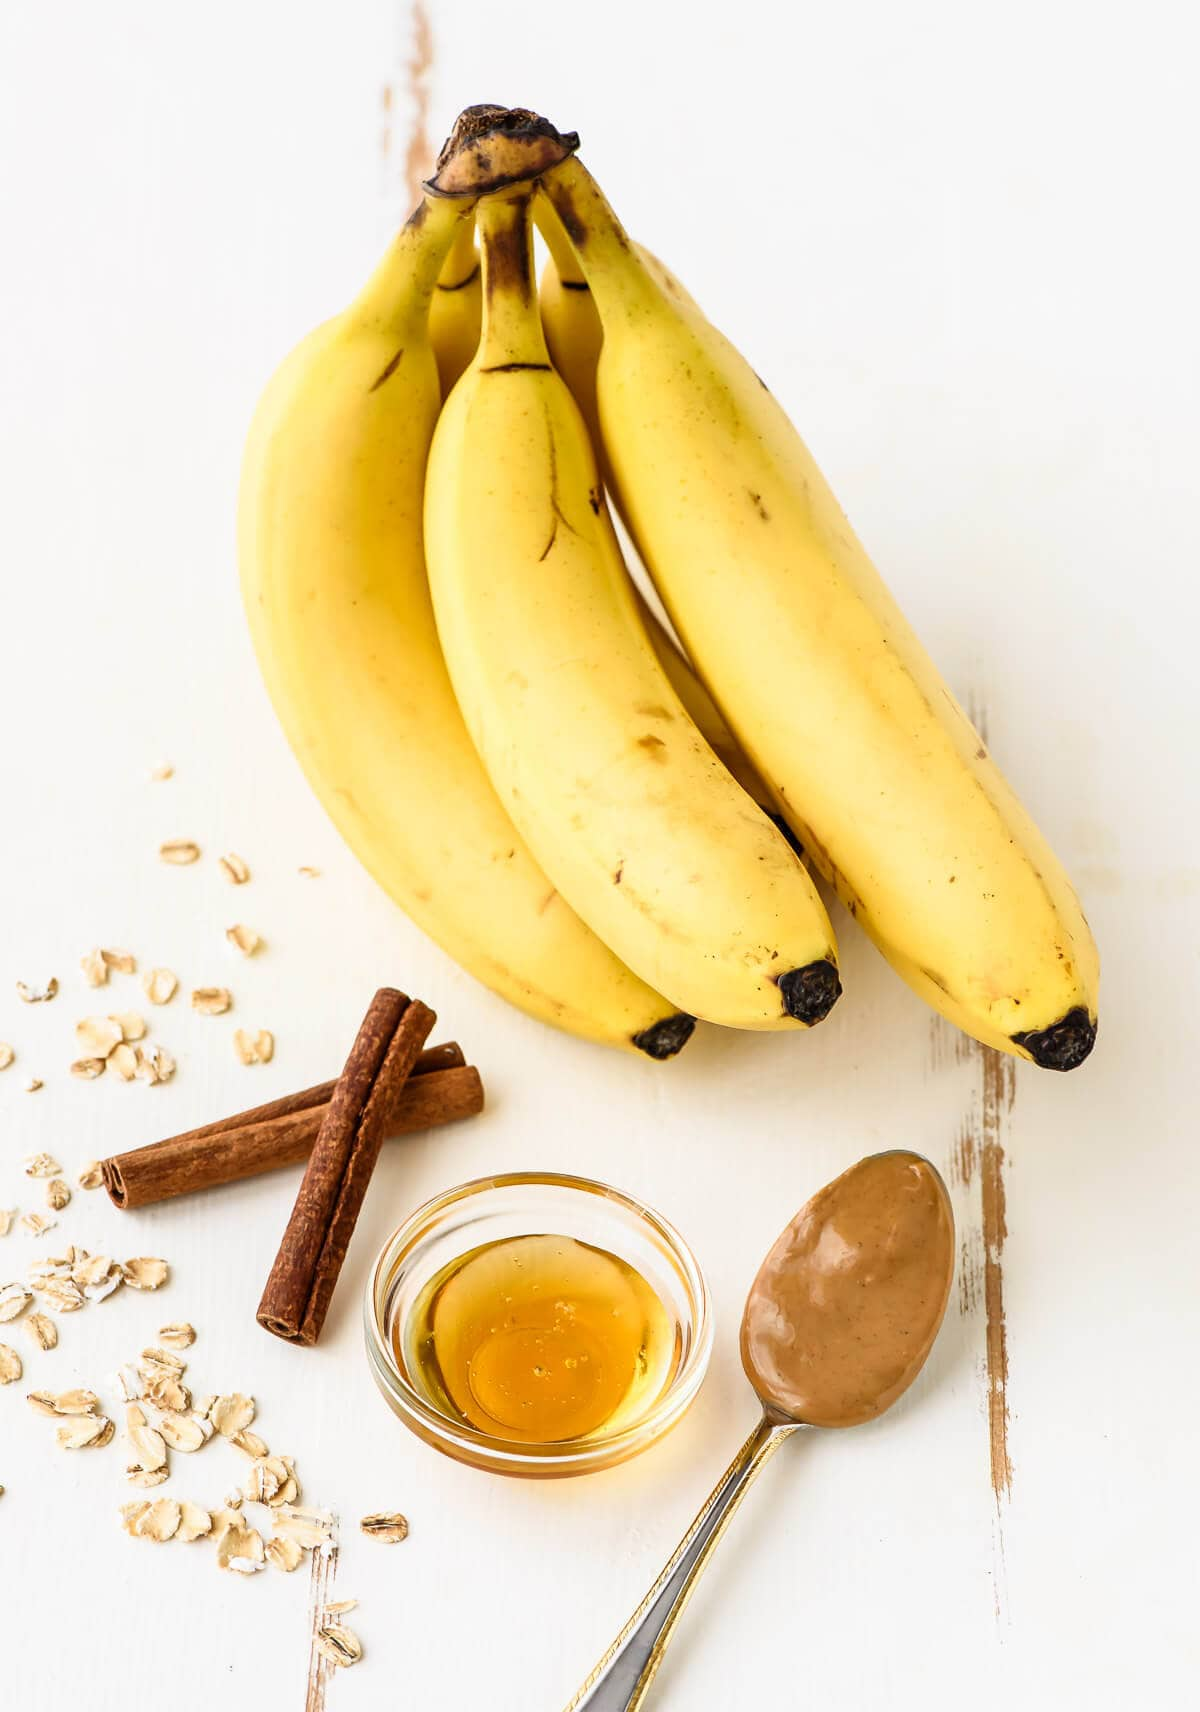 Ingredients needed to make Banana Honey Oatmeal Breakfast Bars